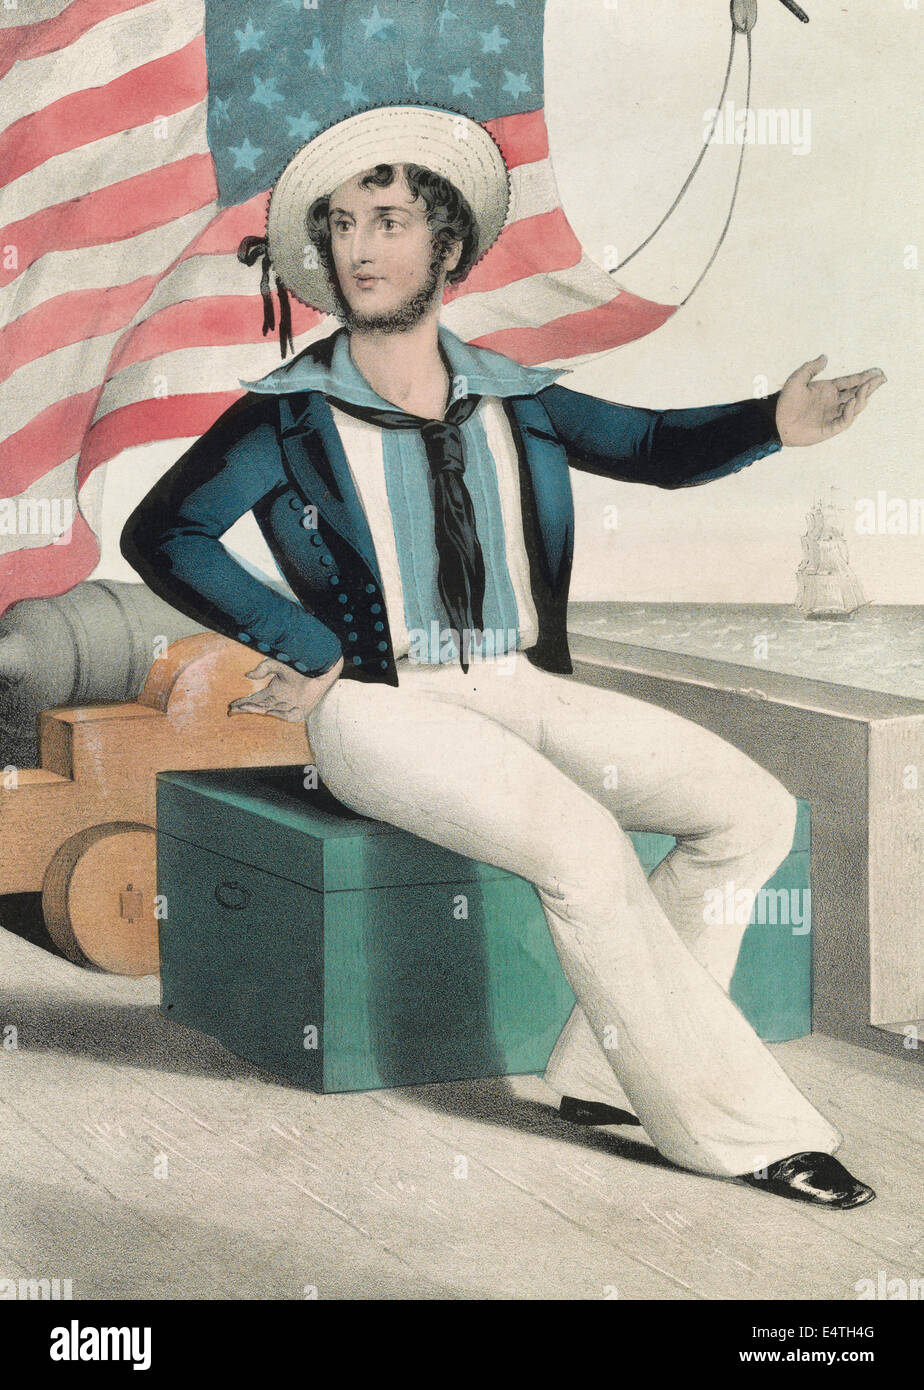 The American tar. 'Don't give up the ship' - American Sailor, circa 1845 - Stock Image